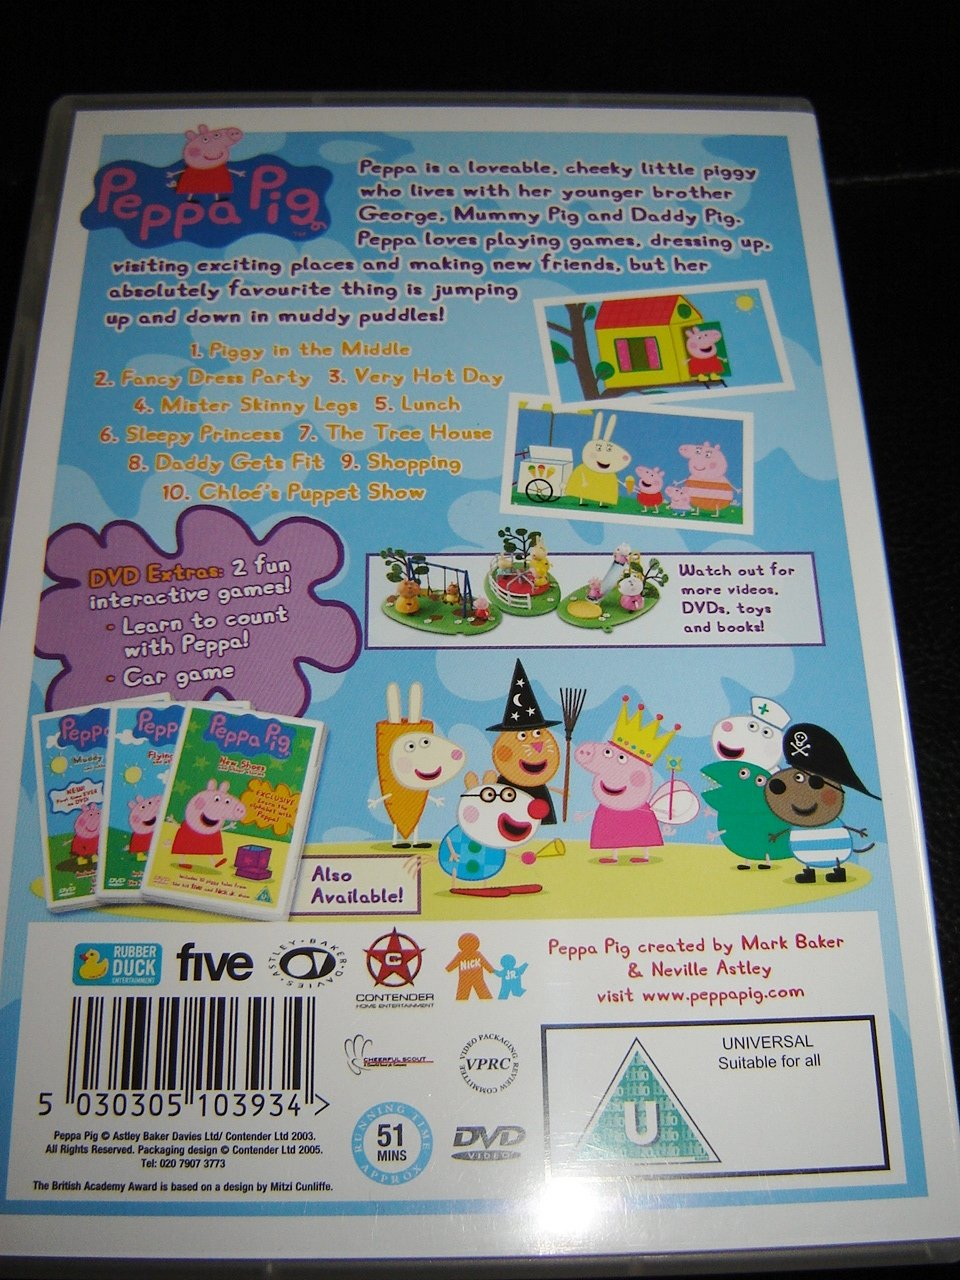 Amazon.com: Peppa Pig - Piggy In The Middle & Other Stories: Peppa Pig: Movies & TV